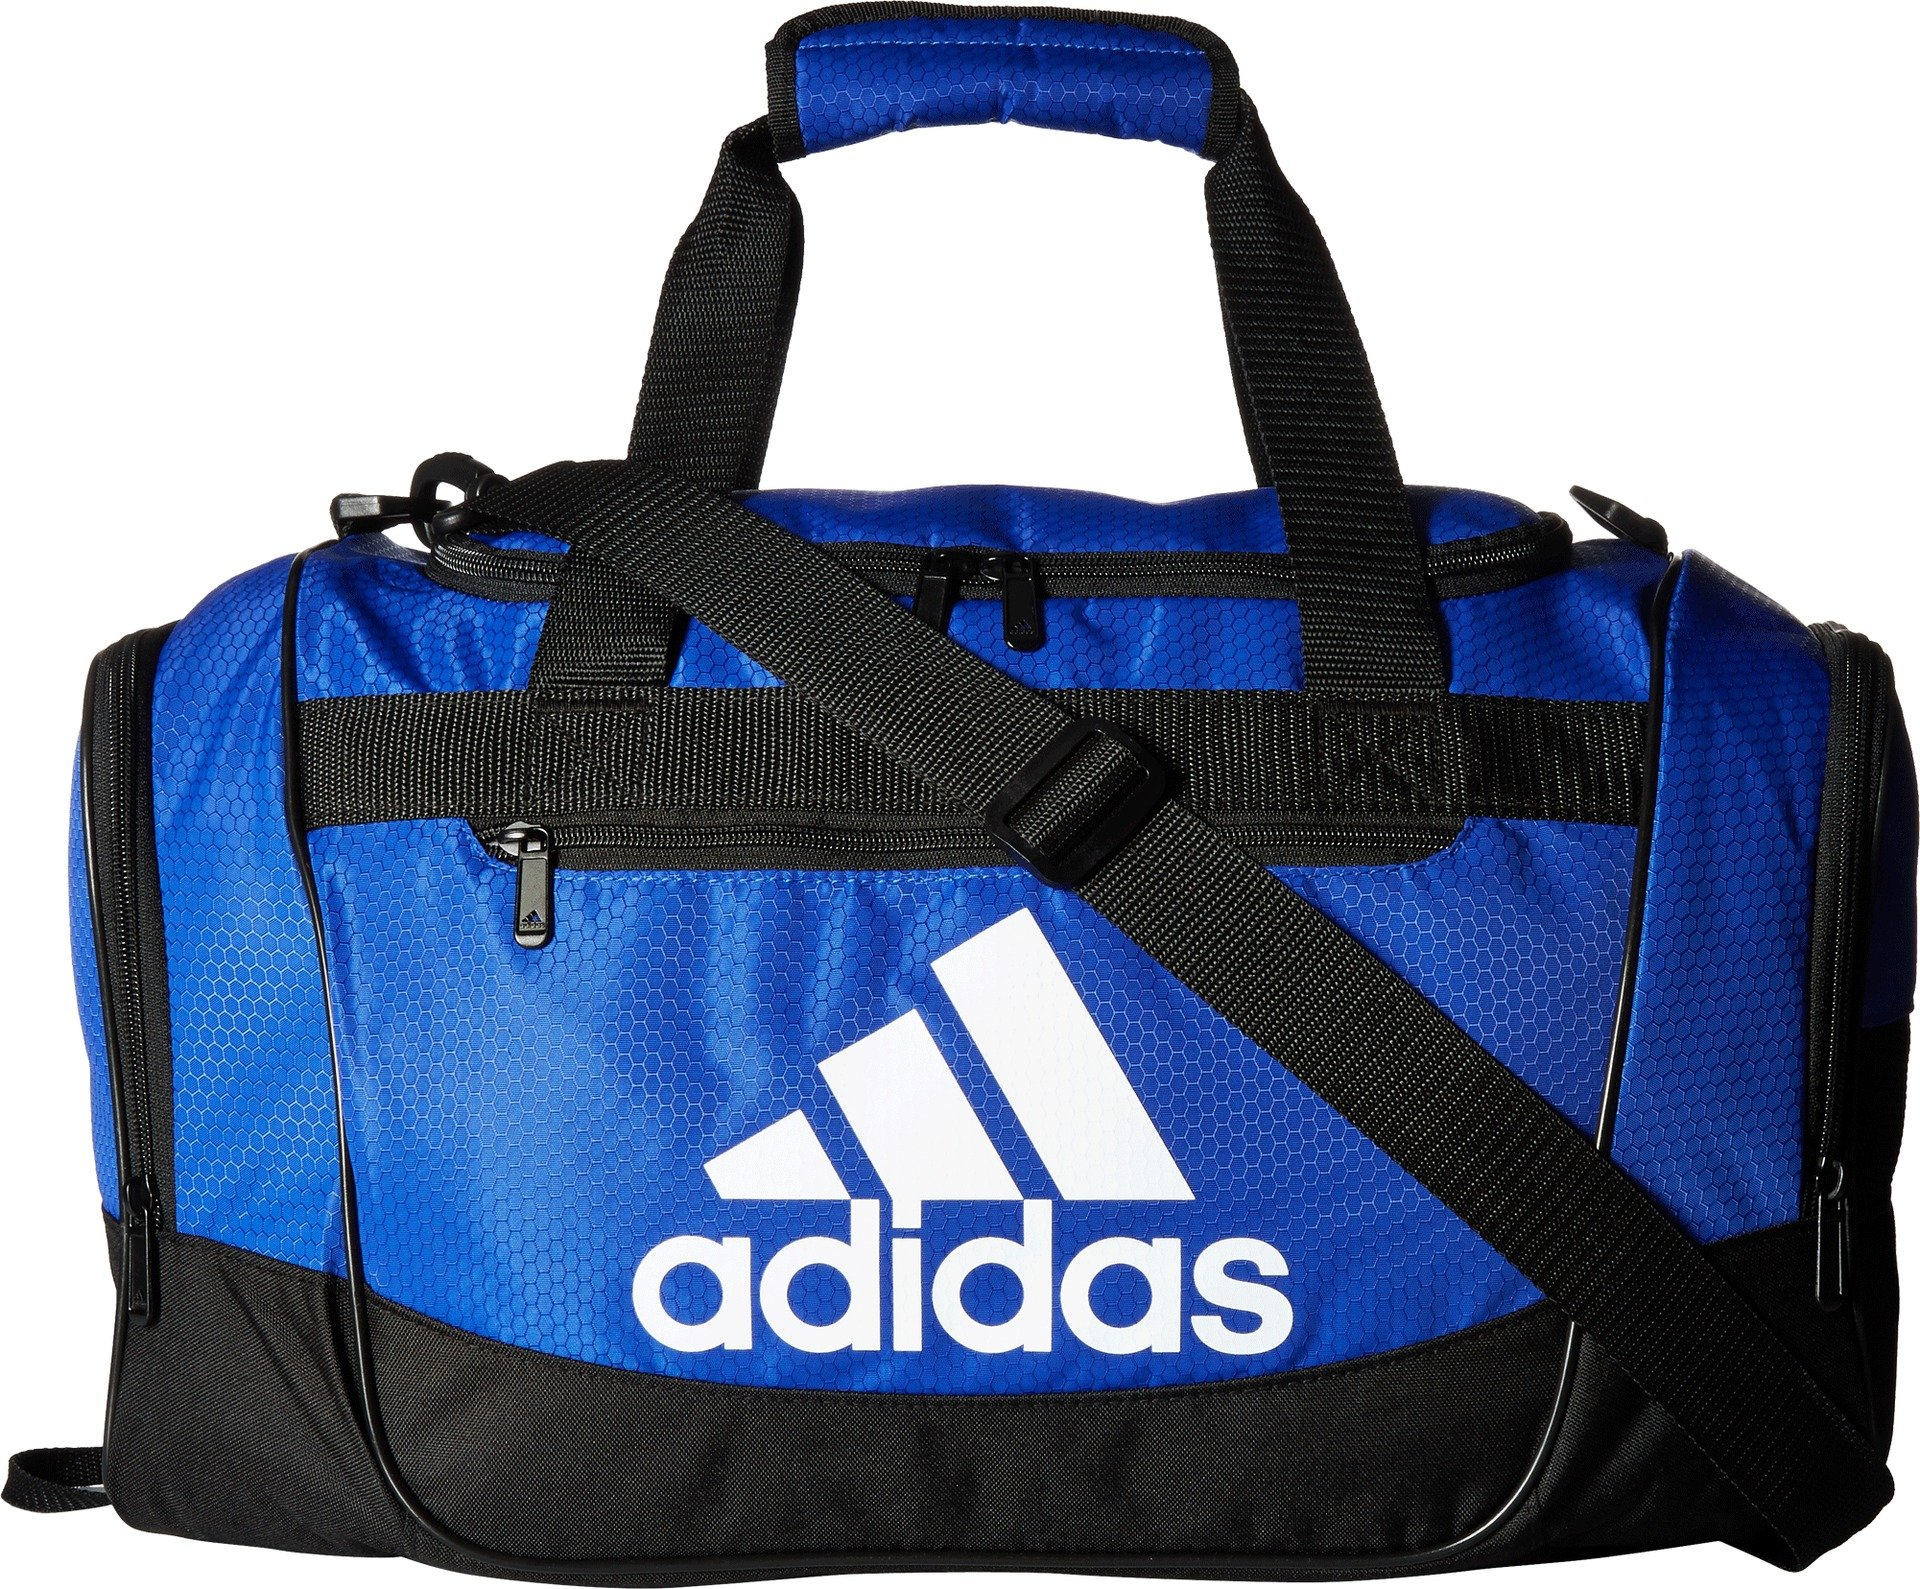 adidas Defender III medium duffel Bag, Blue/Black/White, One Size